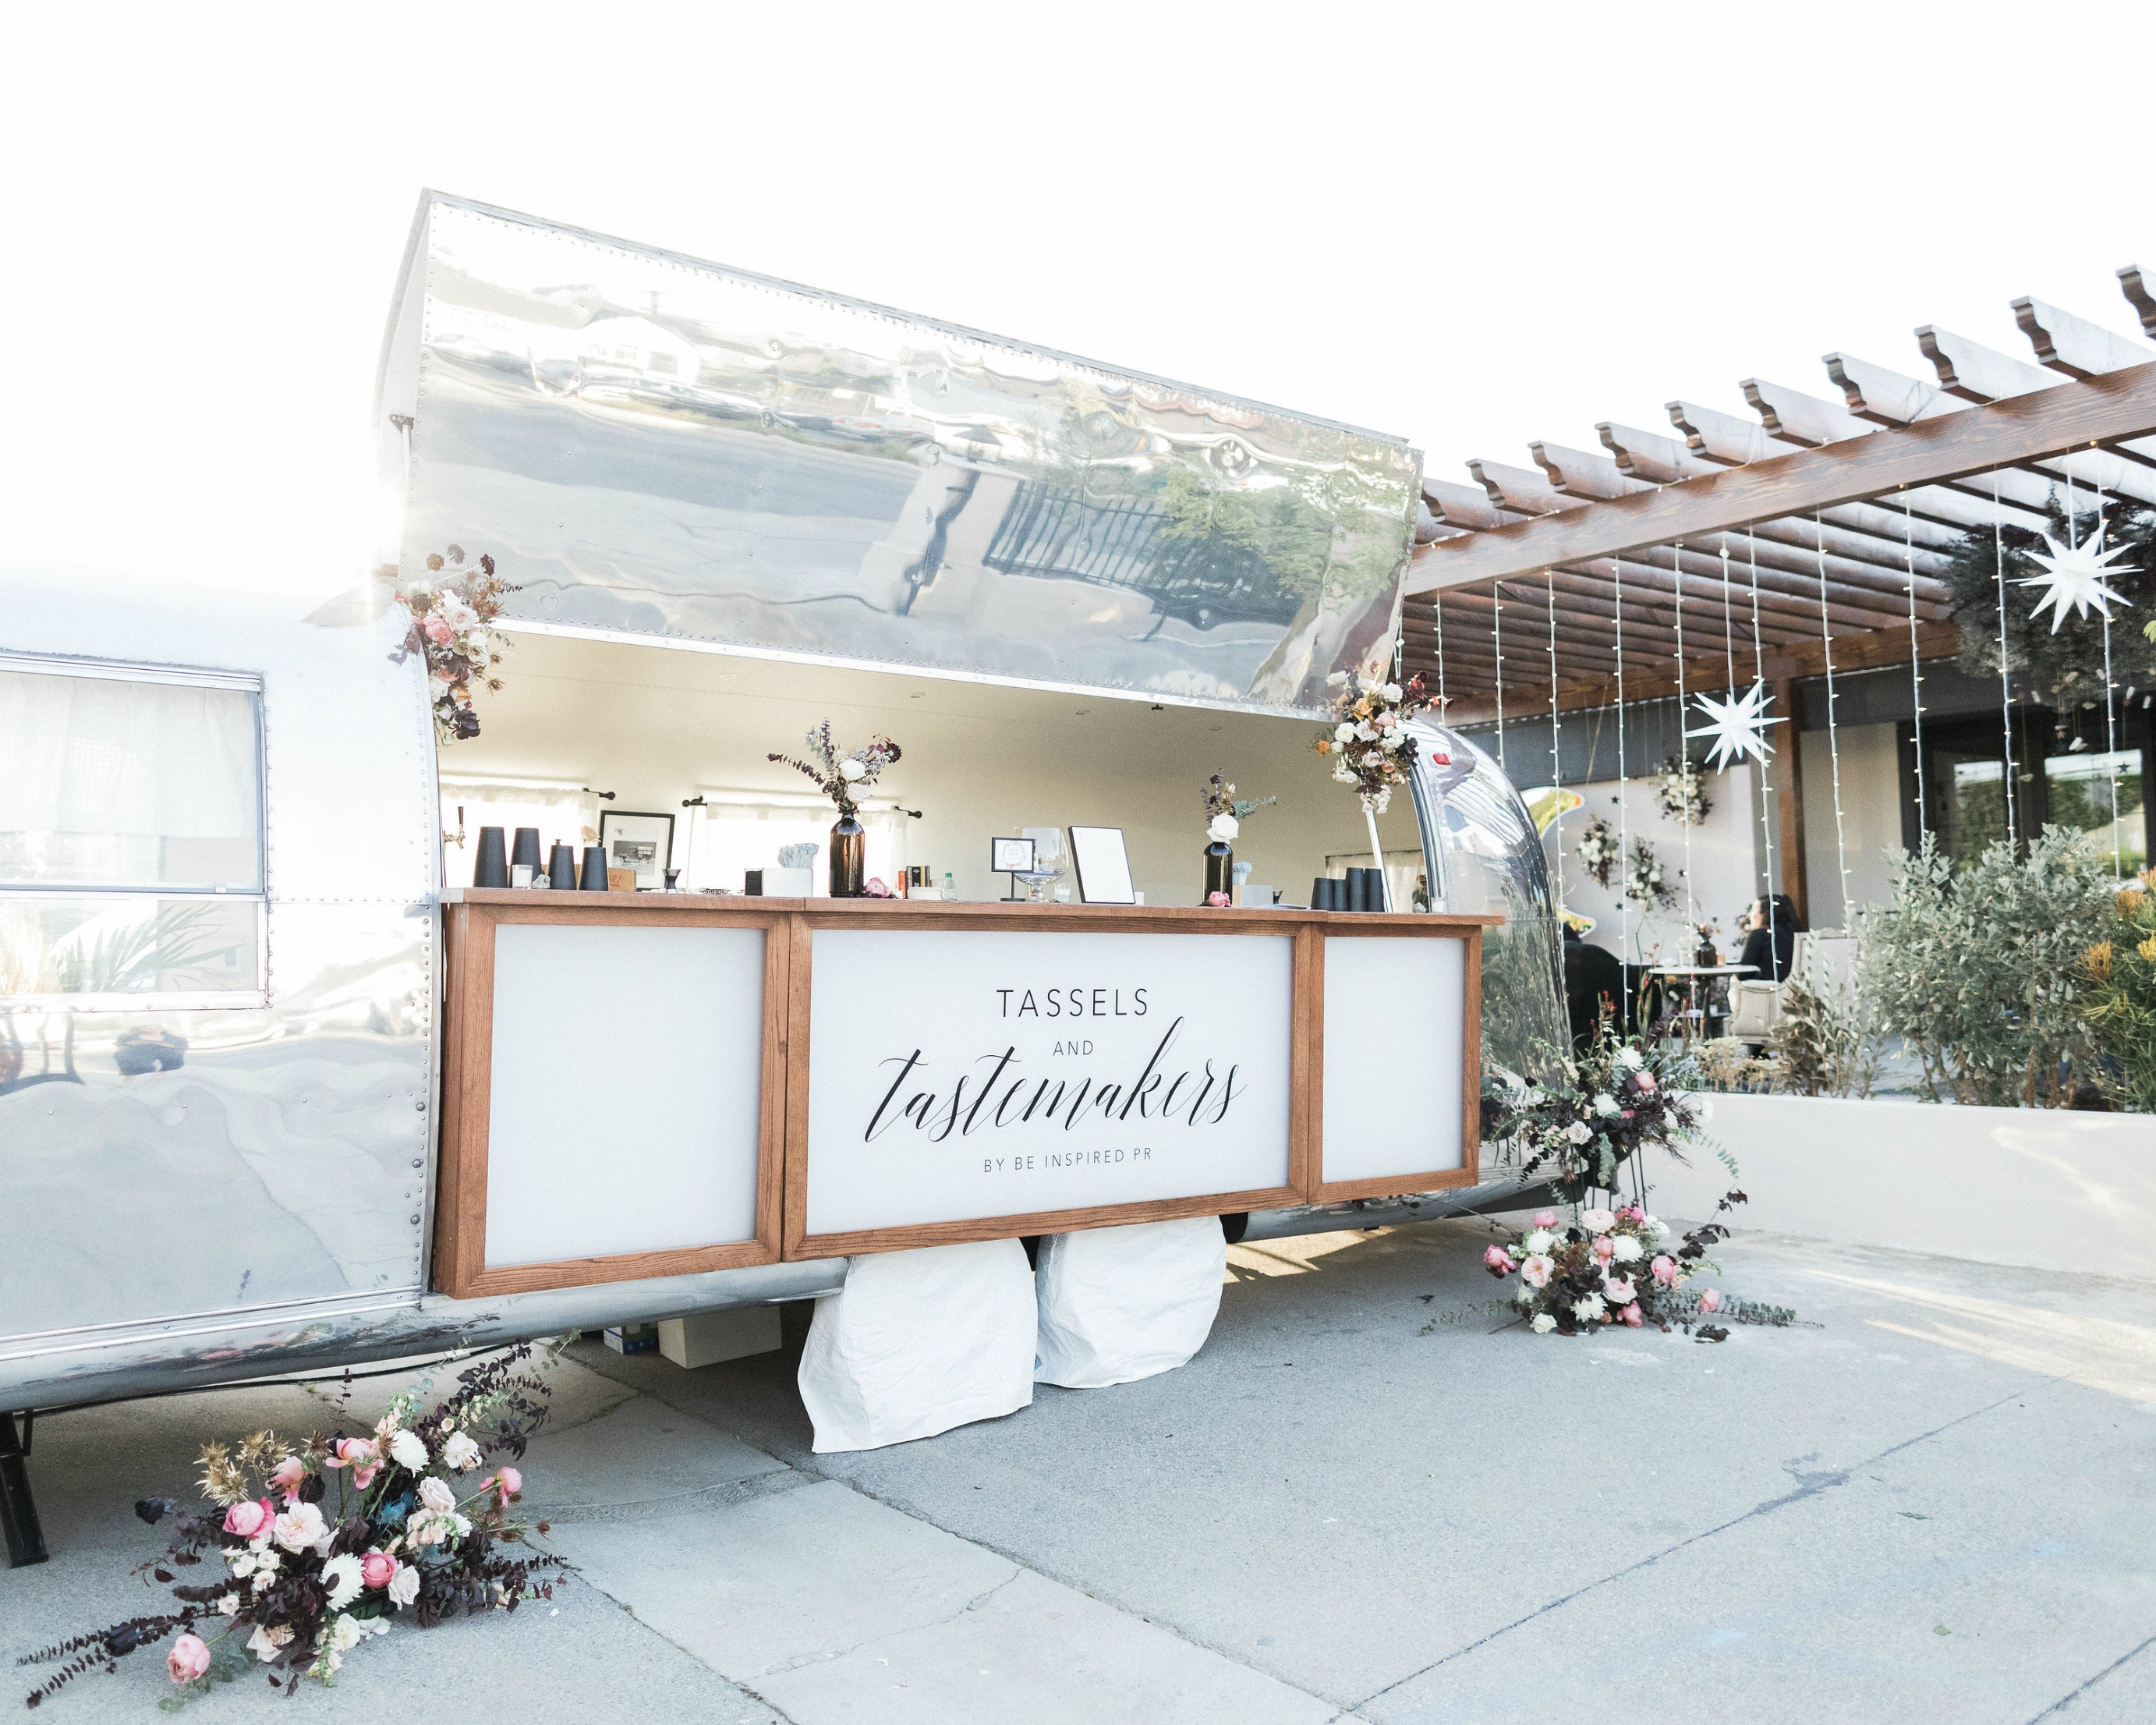 sleek and smooth mobile bar is the perfect spot for a customized signature cocktail